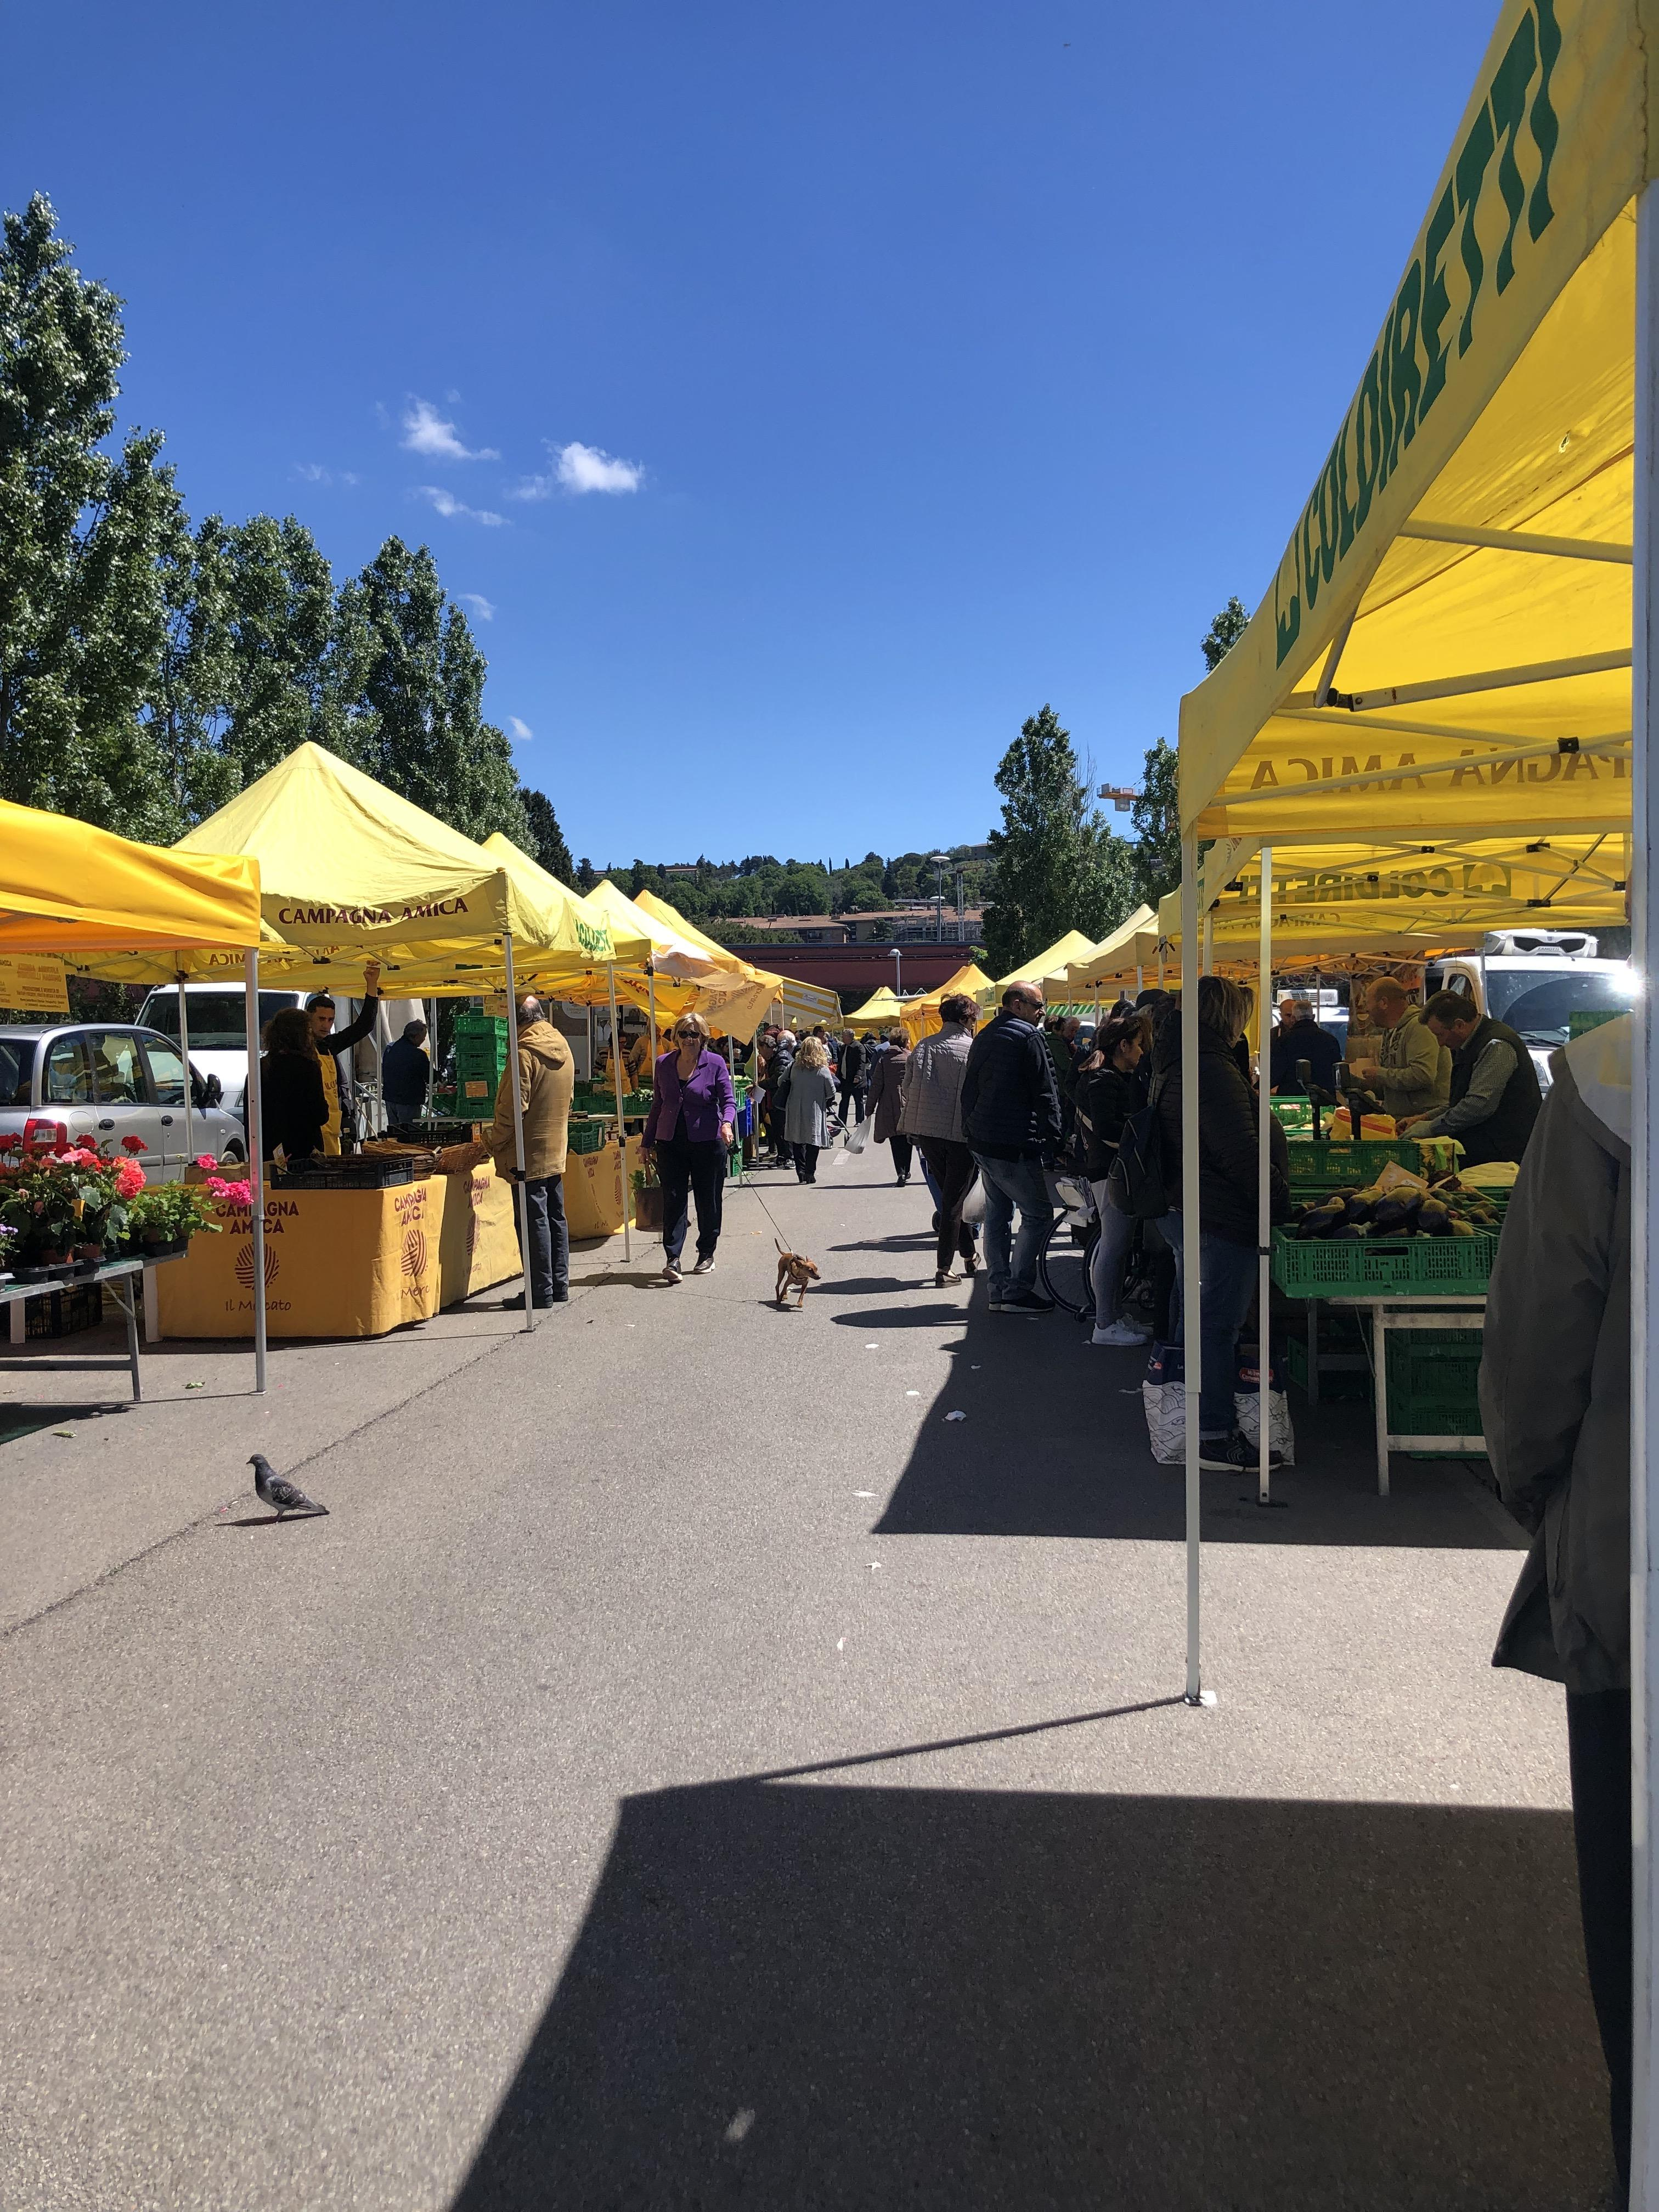 The iconic yellow tents that identify the Campagna Amica Farmer's Market throughout Italy